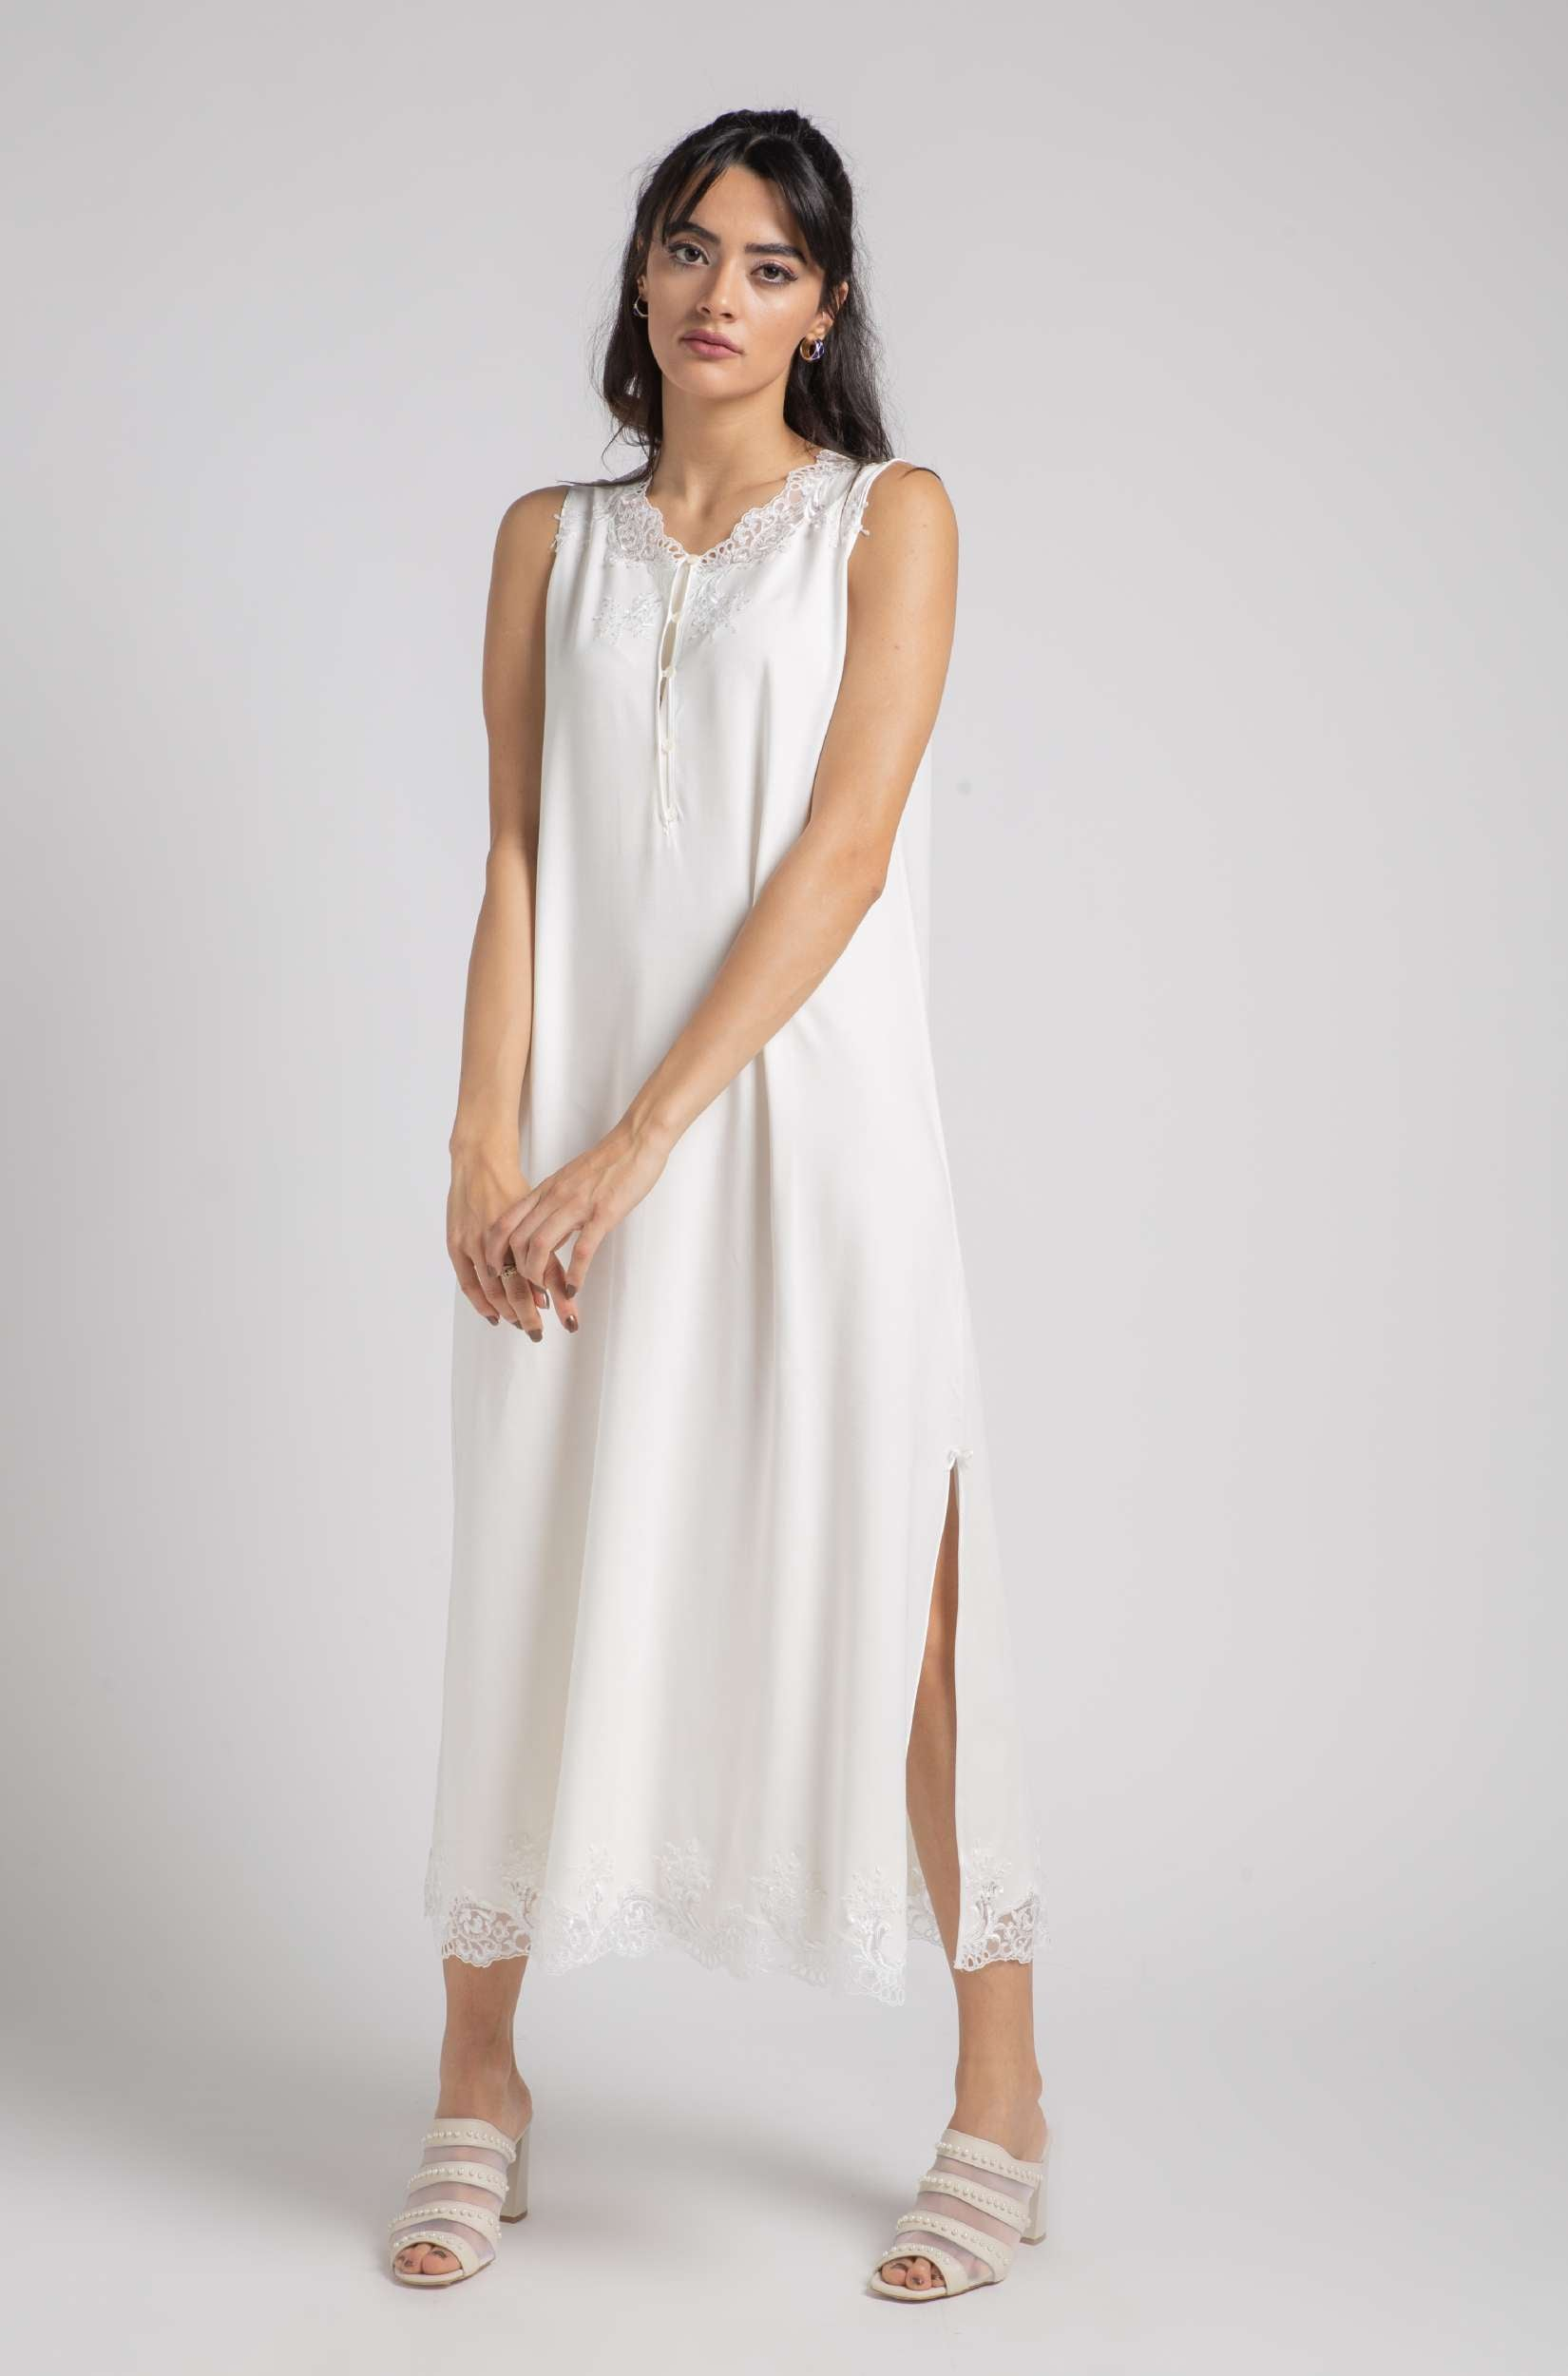 Cotton Nightie - Off White Luna